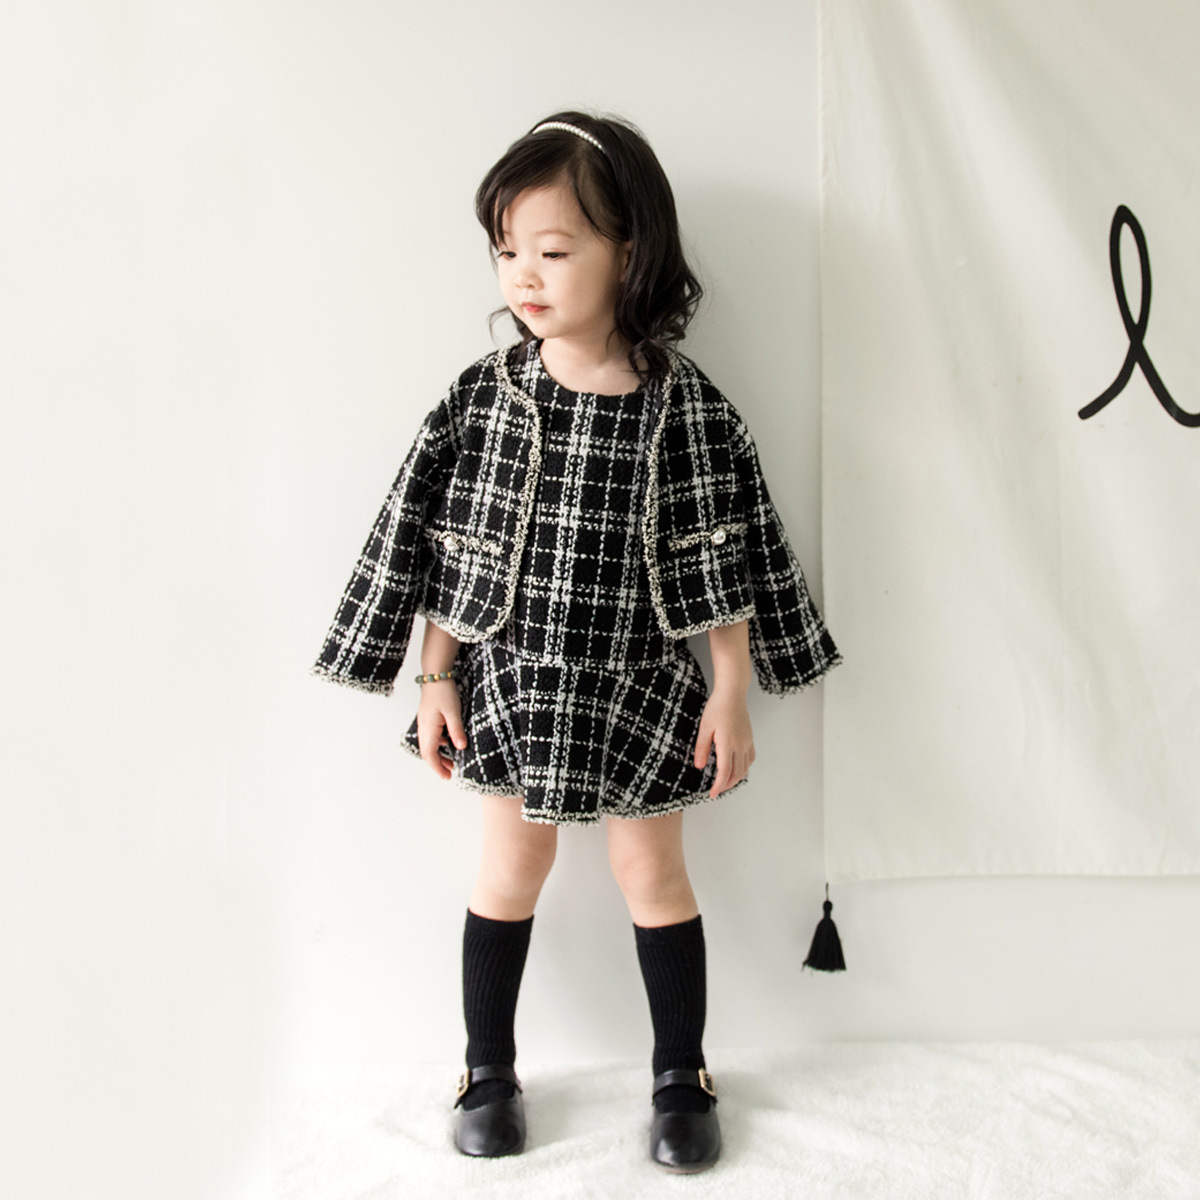 Anlencool 2018 Fashion Korean children autumn girl suit ladies wind suit for children checkered skirt Baby girl clothing set checkered fishtail hem skirt